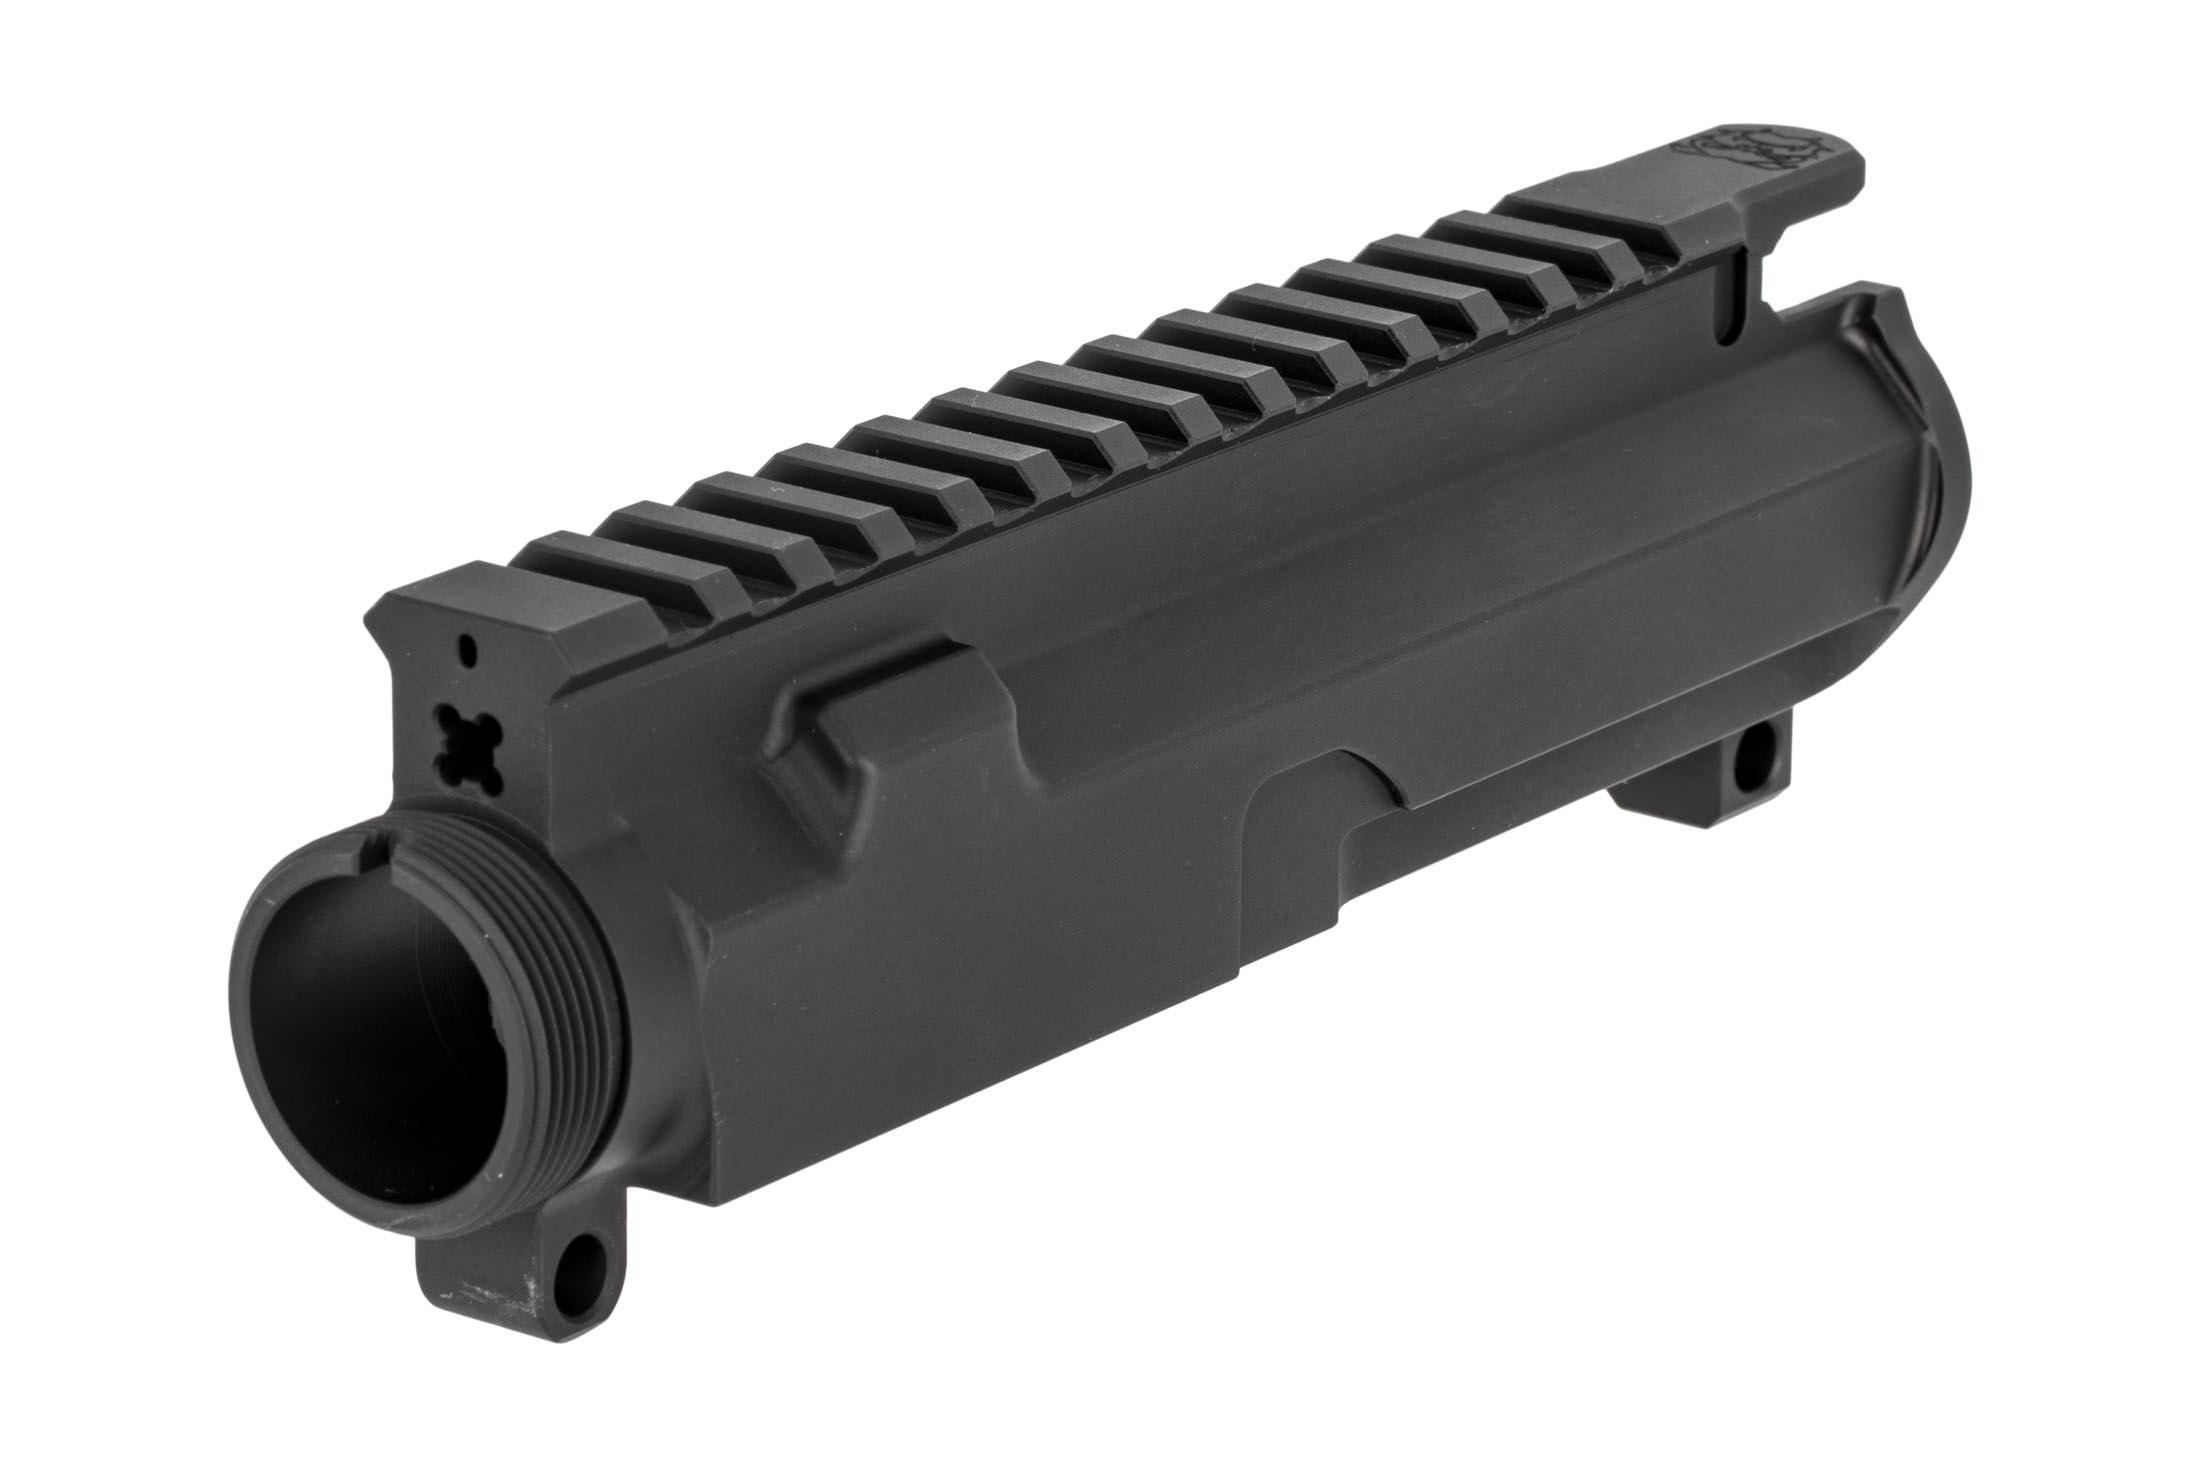 ROSCO Manufacturing precision machined Purebred AR upper receiver is compatible with the Purebred handguards